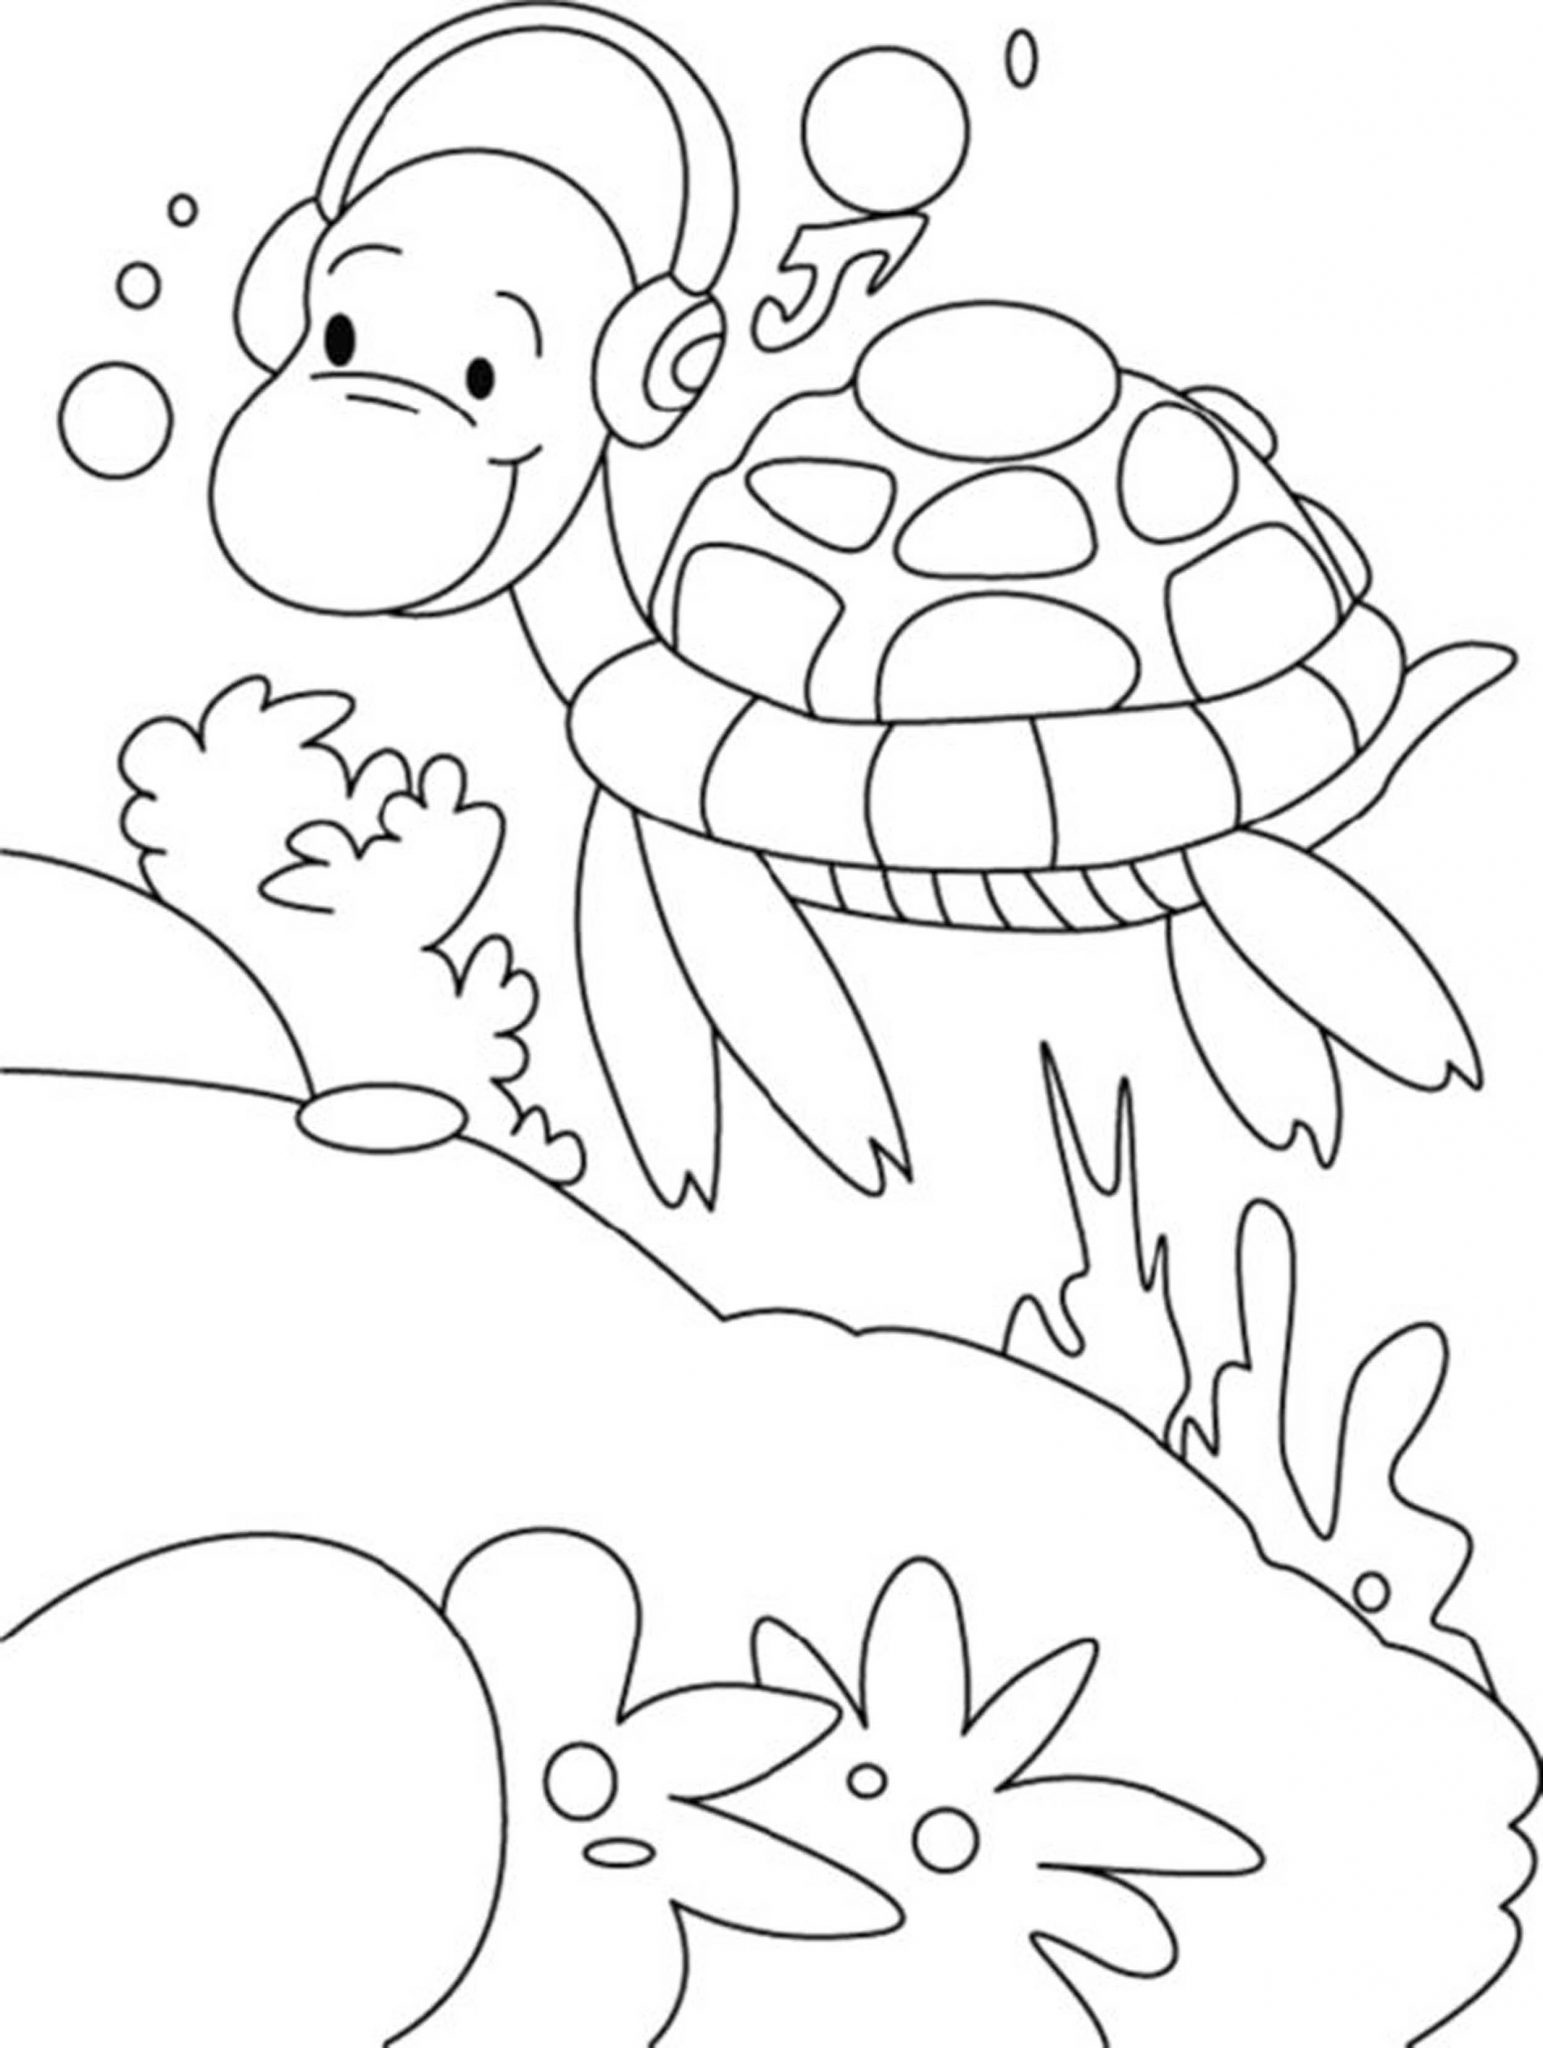 tortoise coloring page cute baby turtle coloring pages bestappsforkidscom coloring page tortoise